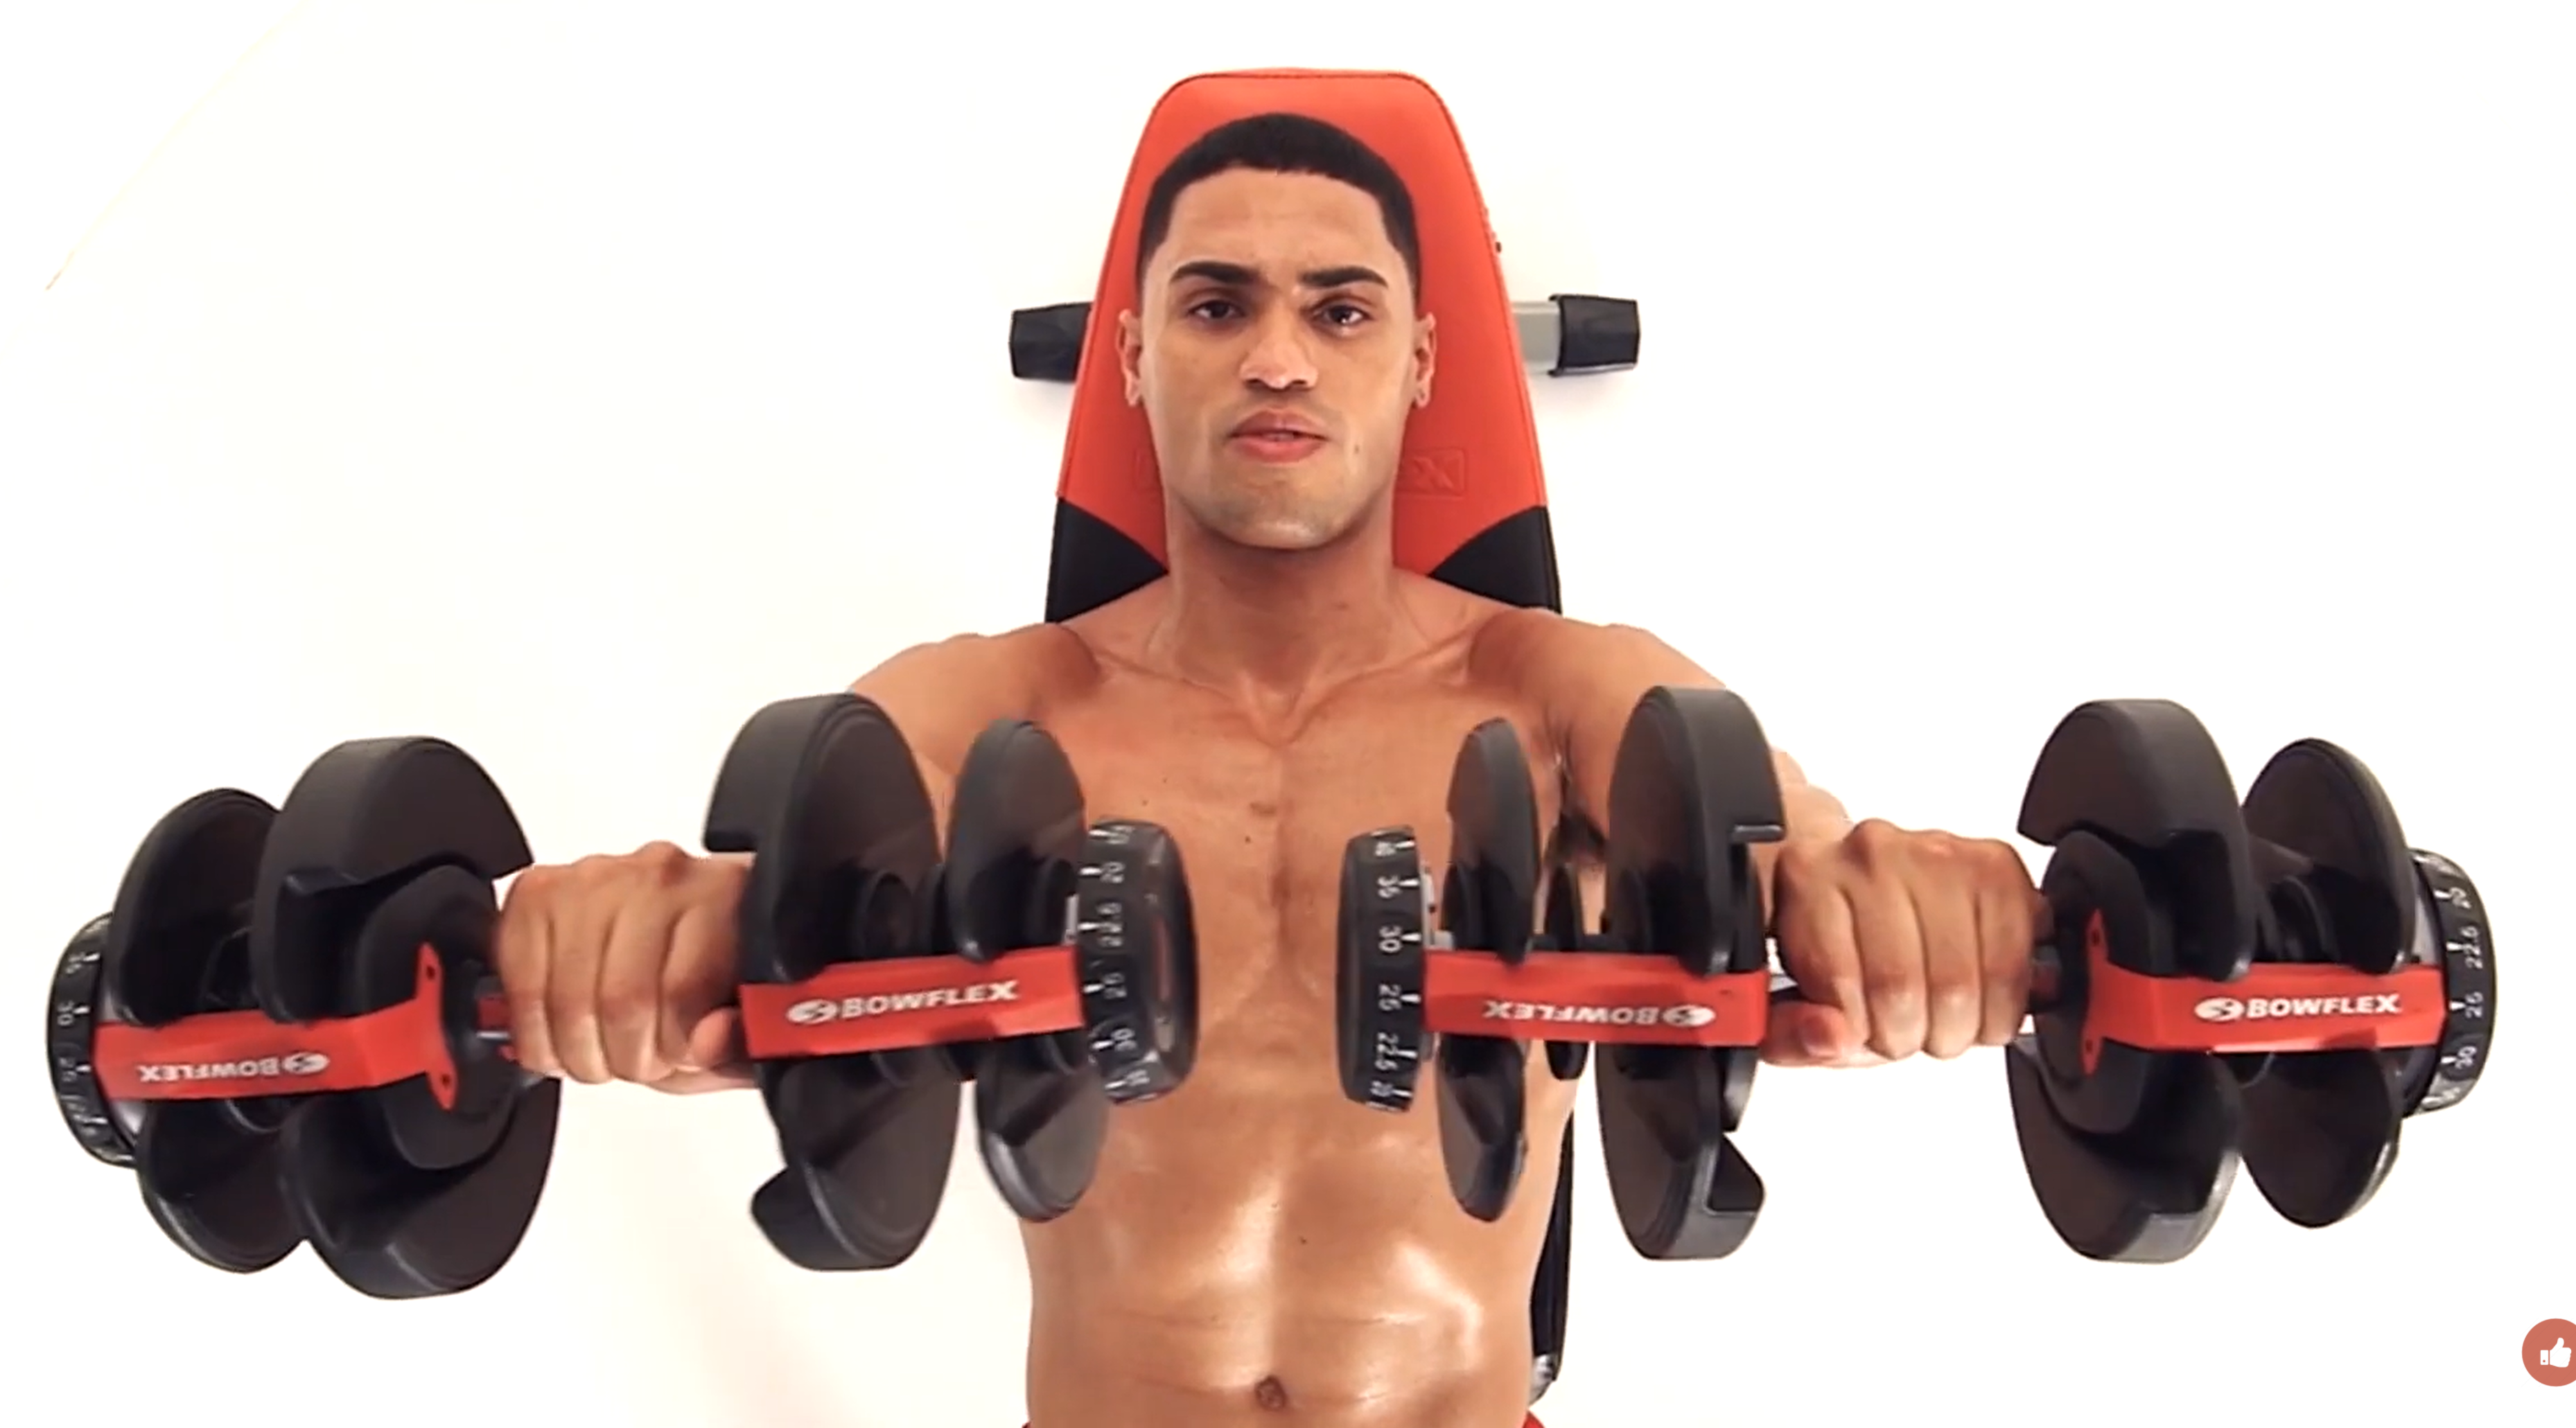 Cheapest Adjustable Dumbbells